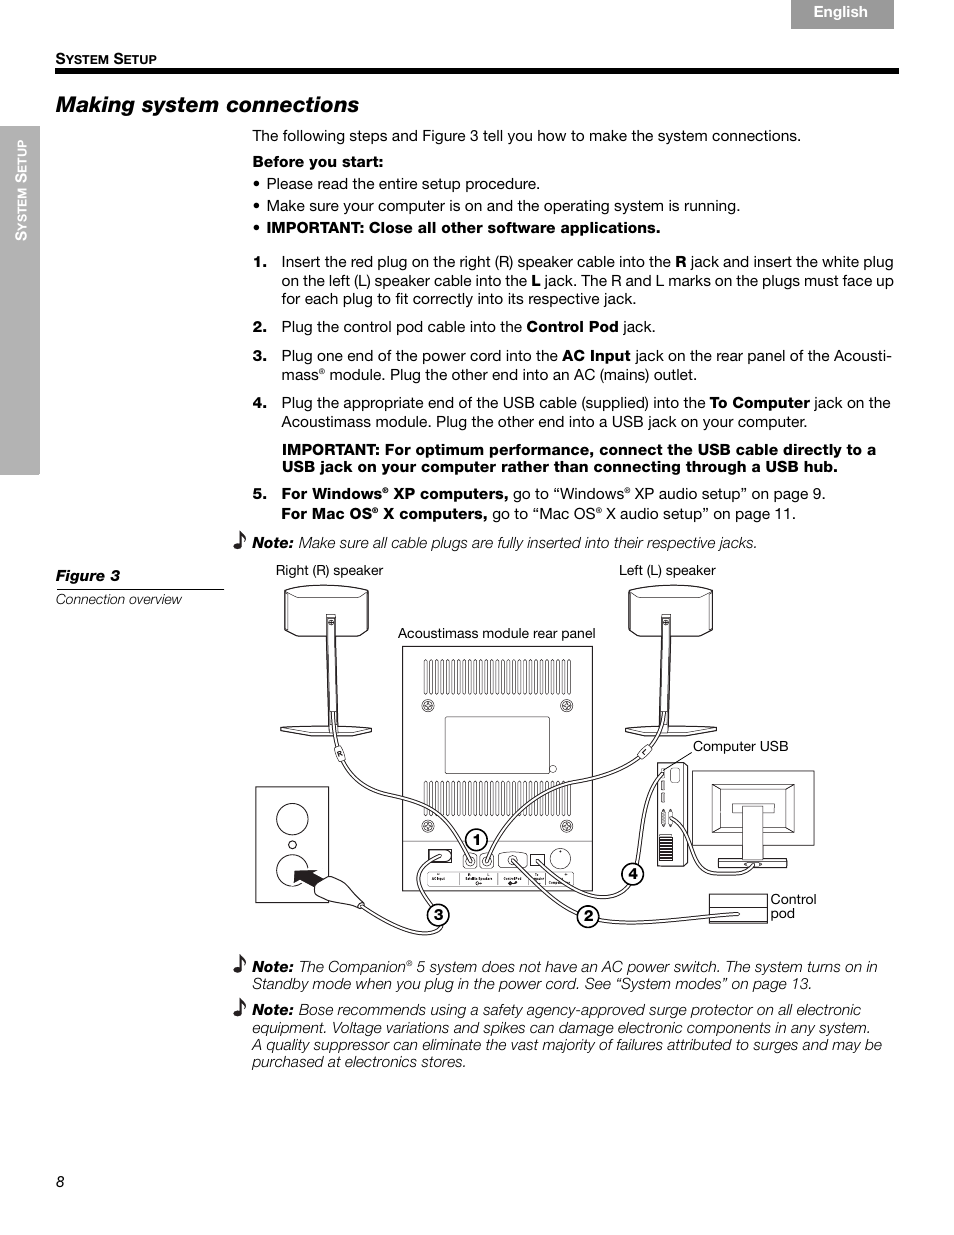 making system connections bose companion 5 user manual page 10 rh manualsdir com Bose Companion 20 bose companion 5 manuale